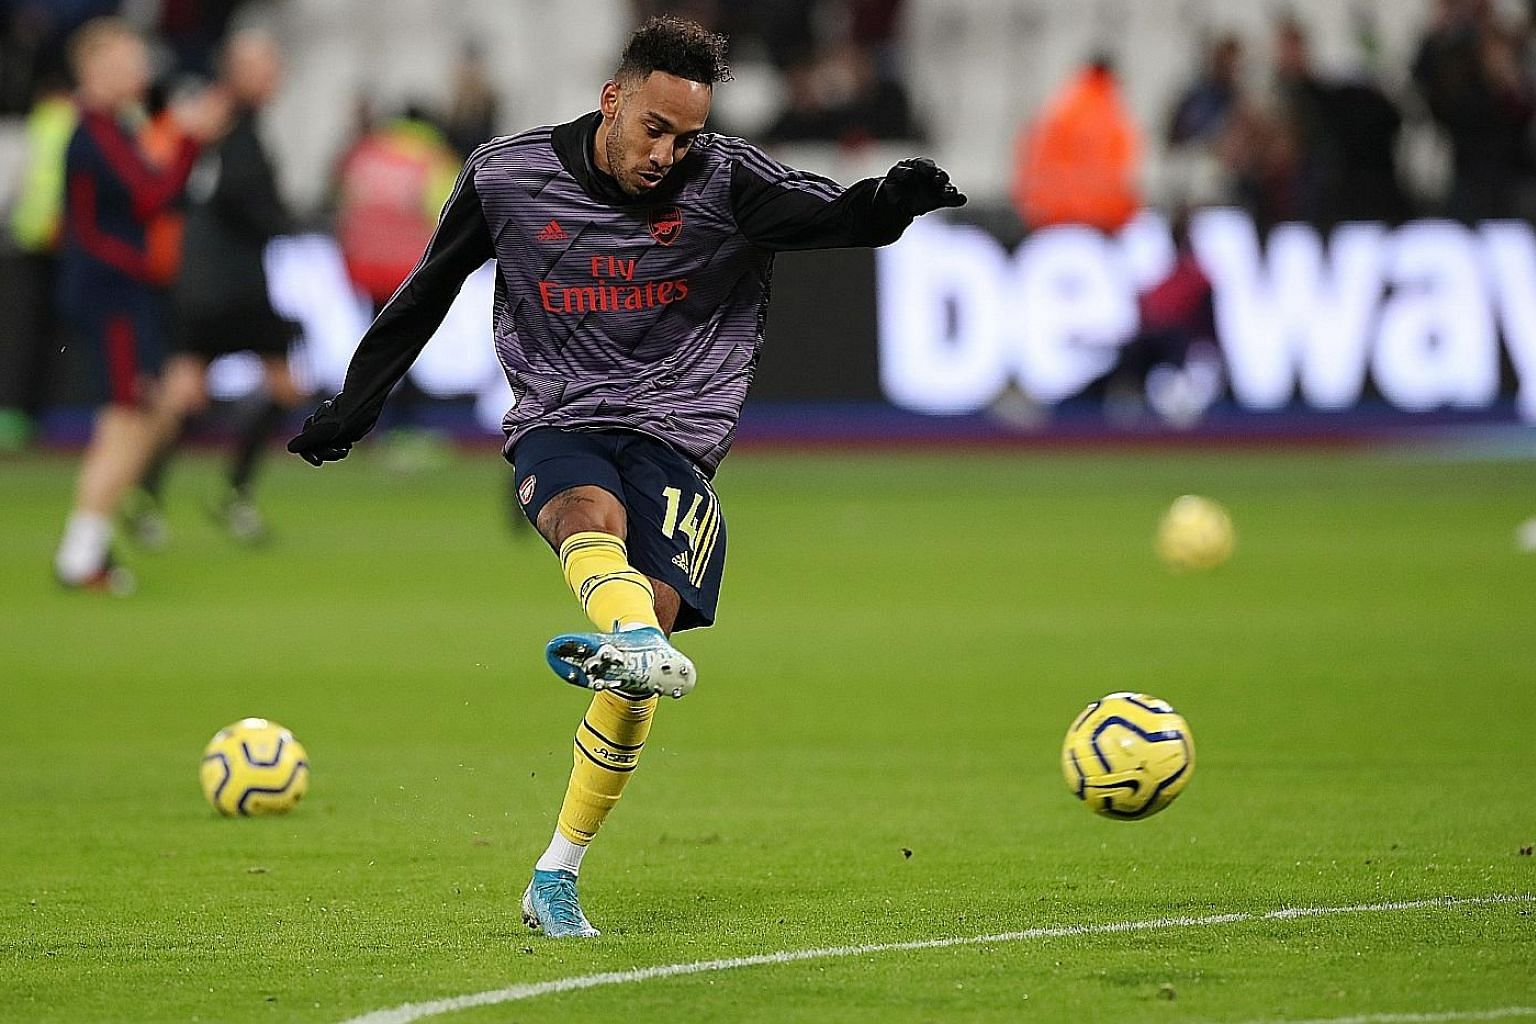 Pierre-Emerick Aubameyang warming up before the Premier League match against West Ham on Monday. He scored Arsenal's final goal in their 3-1 away win and is joint second in the scoring stakes.